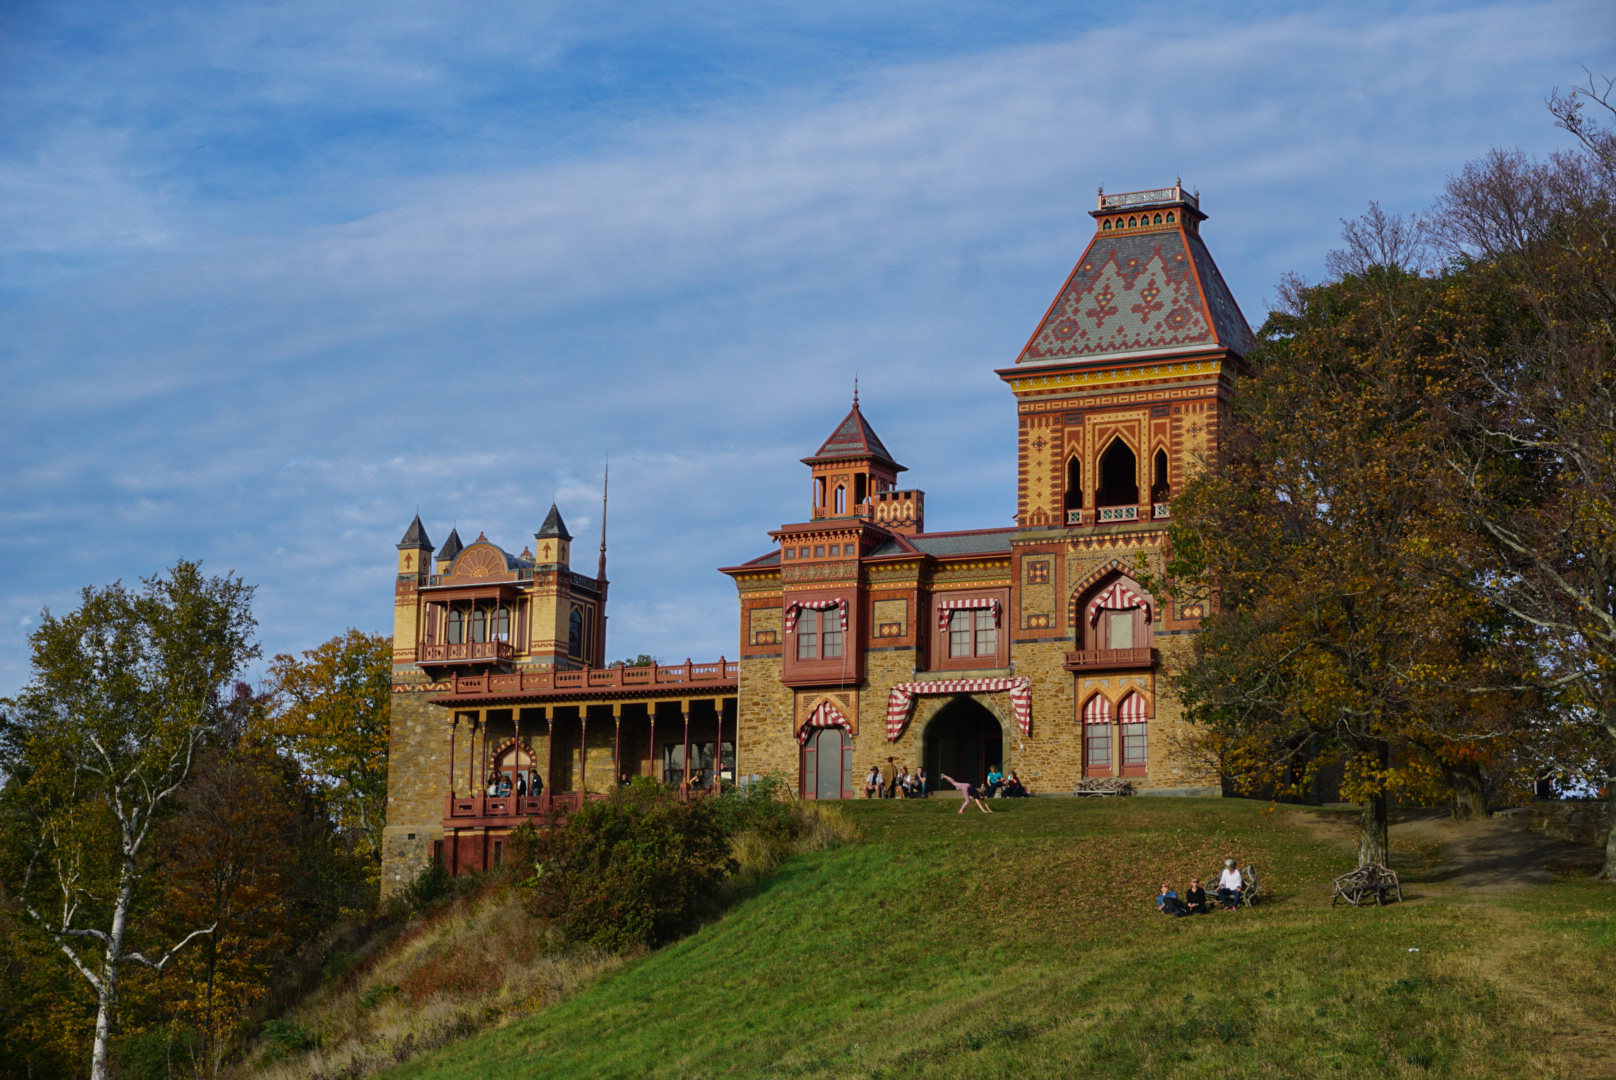 An exterior of a large historic house perched on a hill